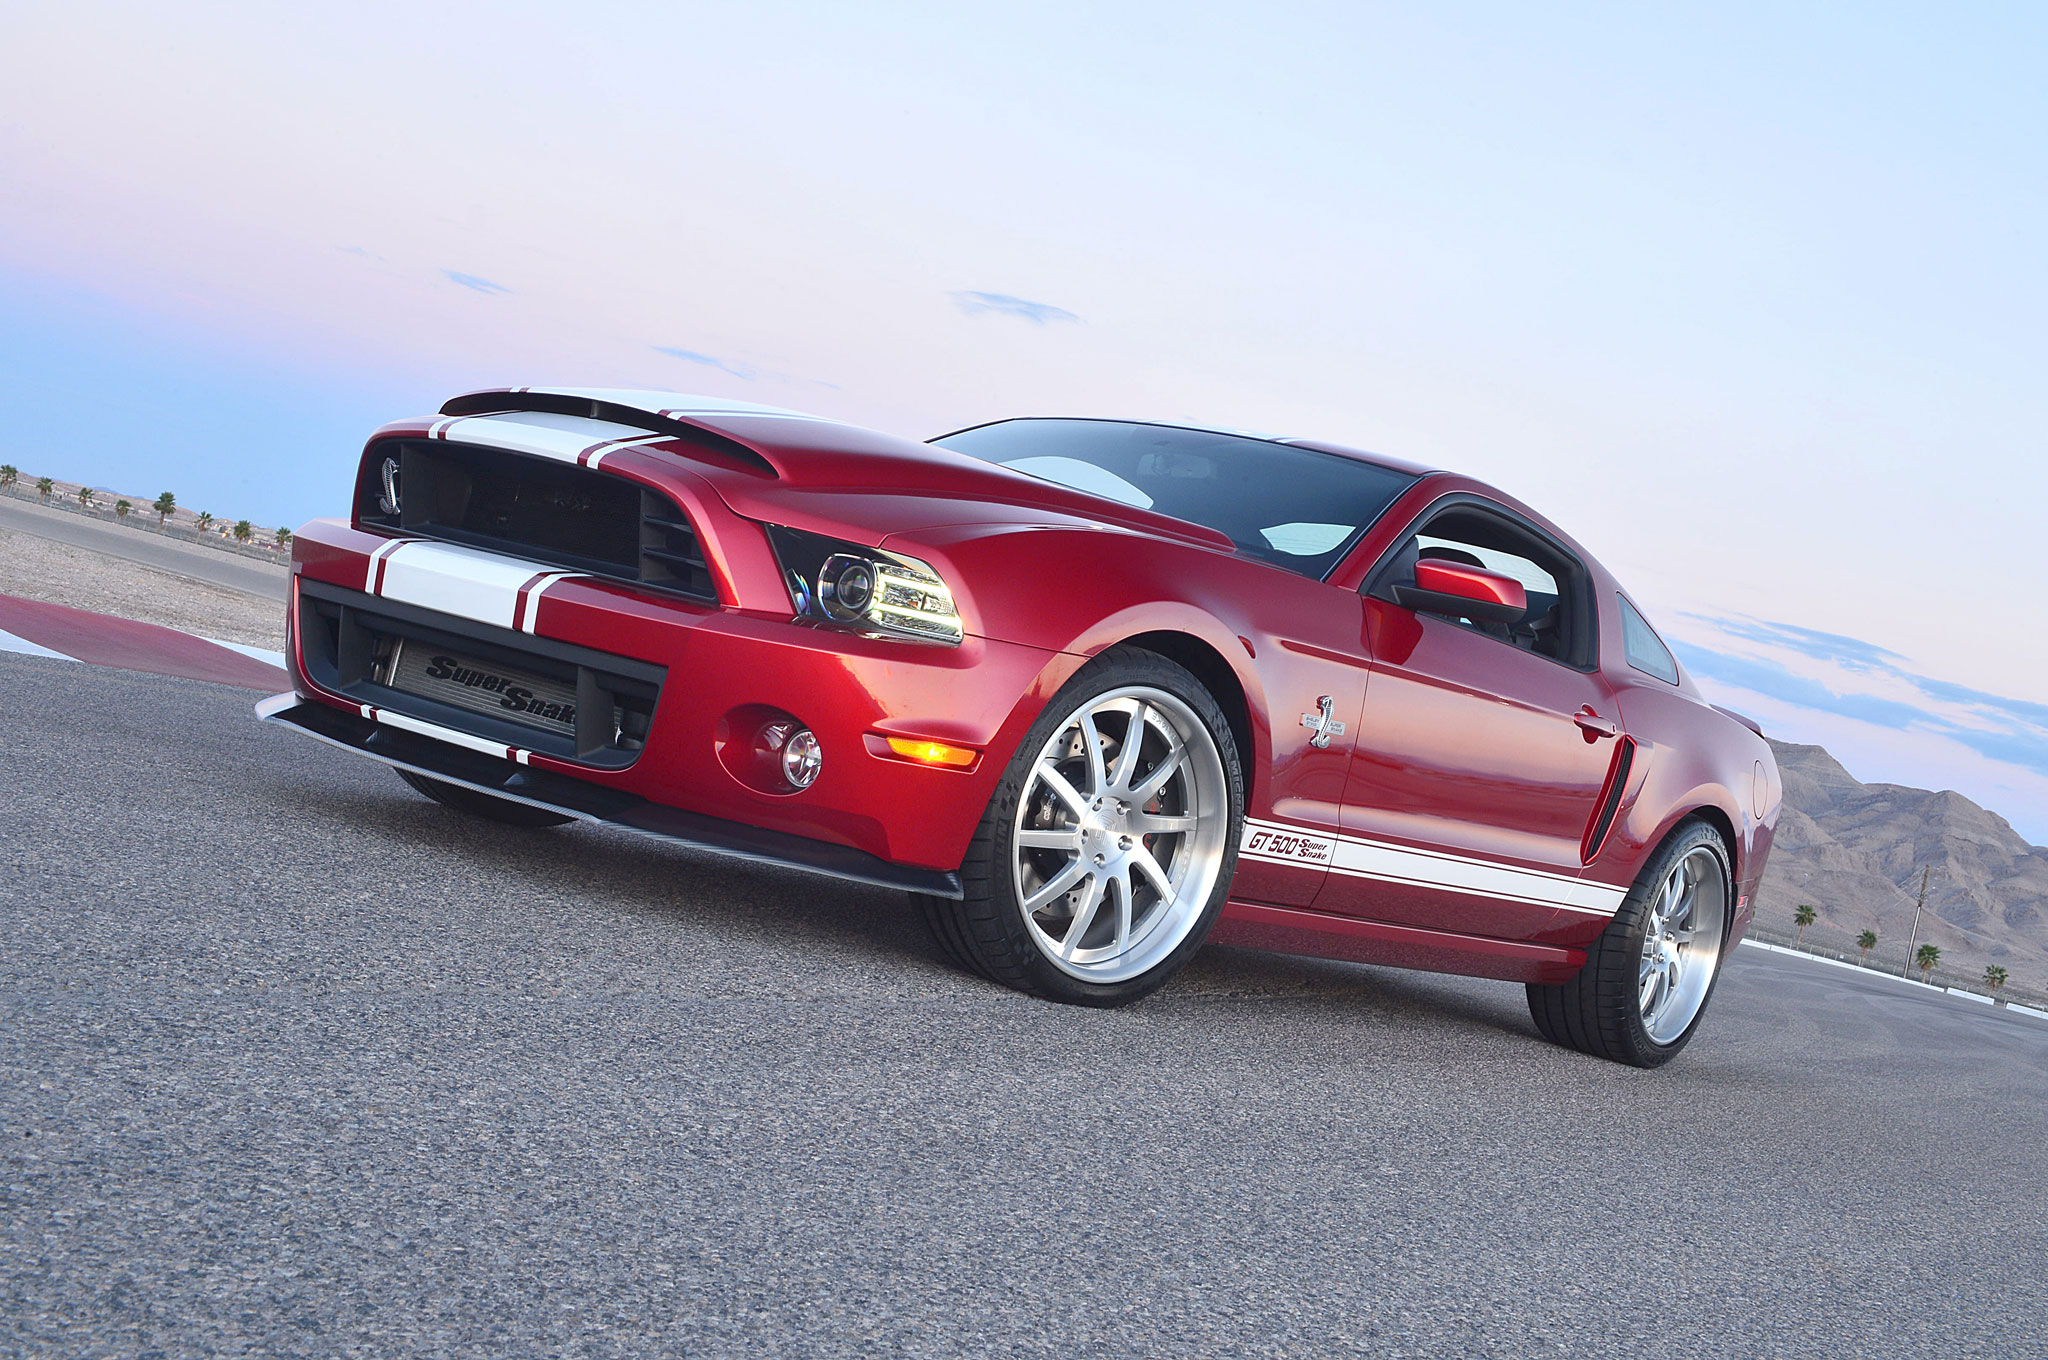 2013 Shelby GT500 Super Snake Front Left Side View 41